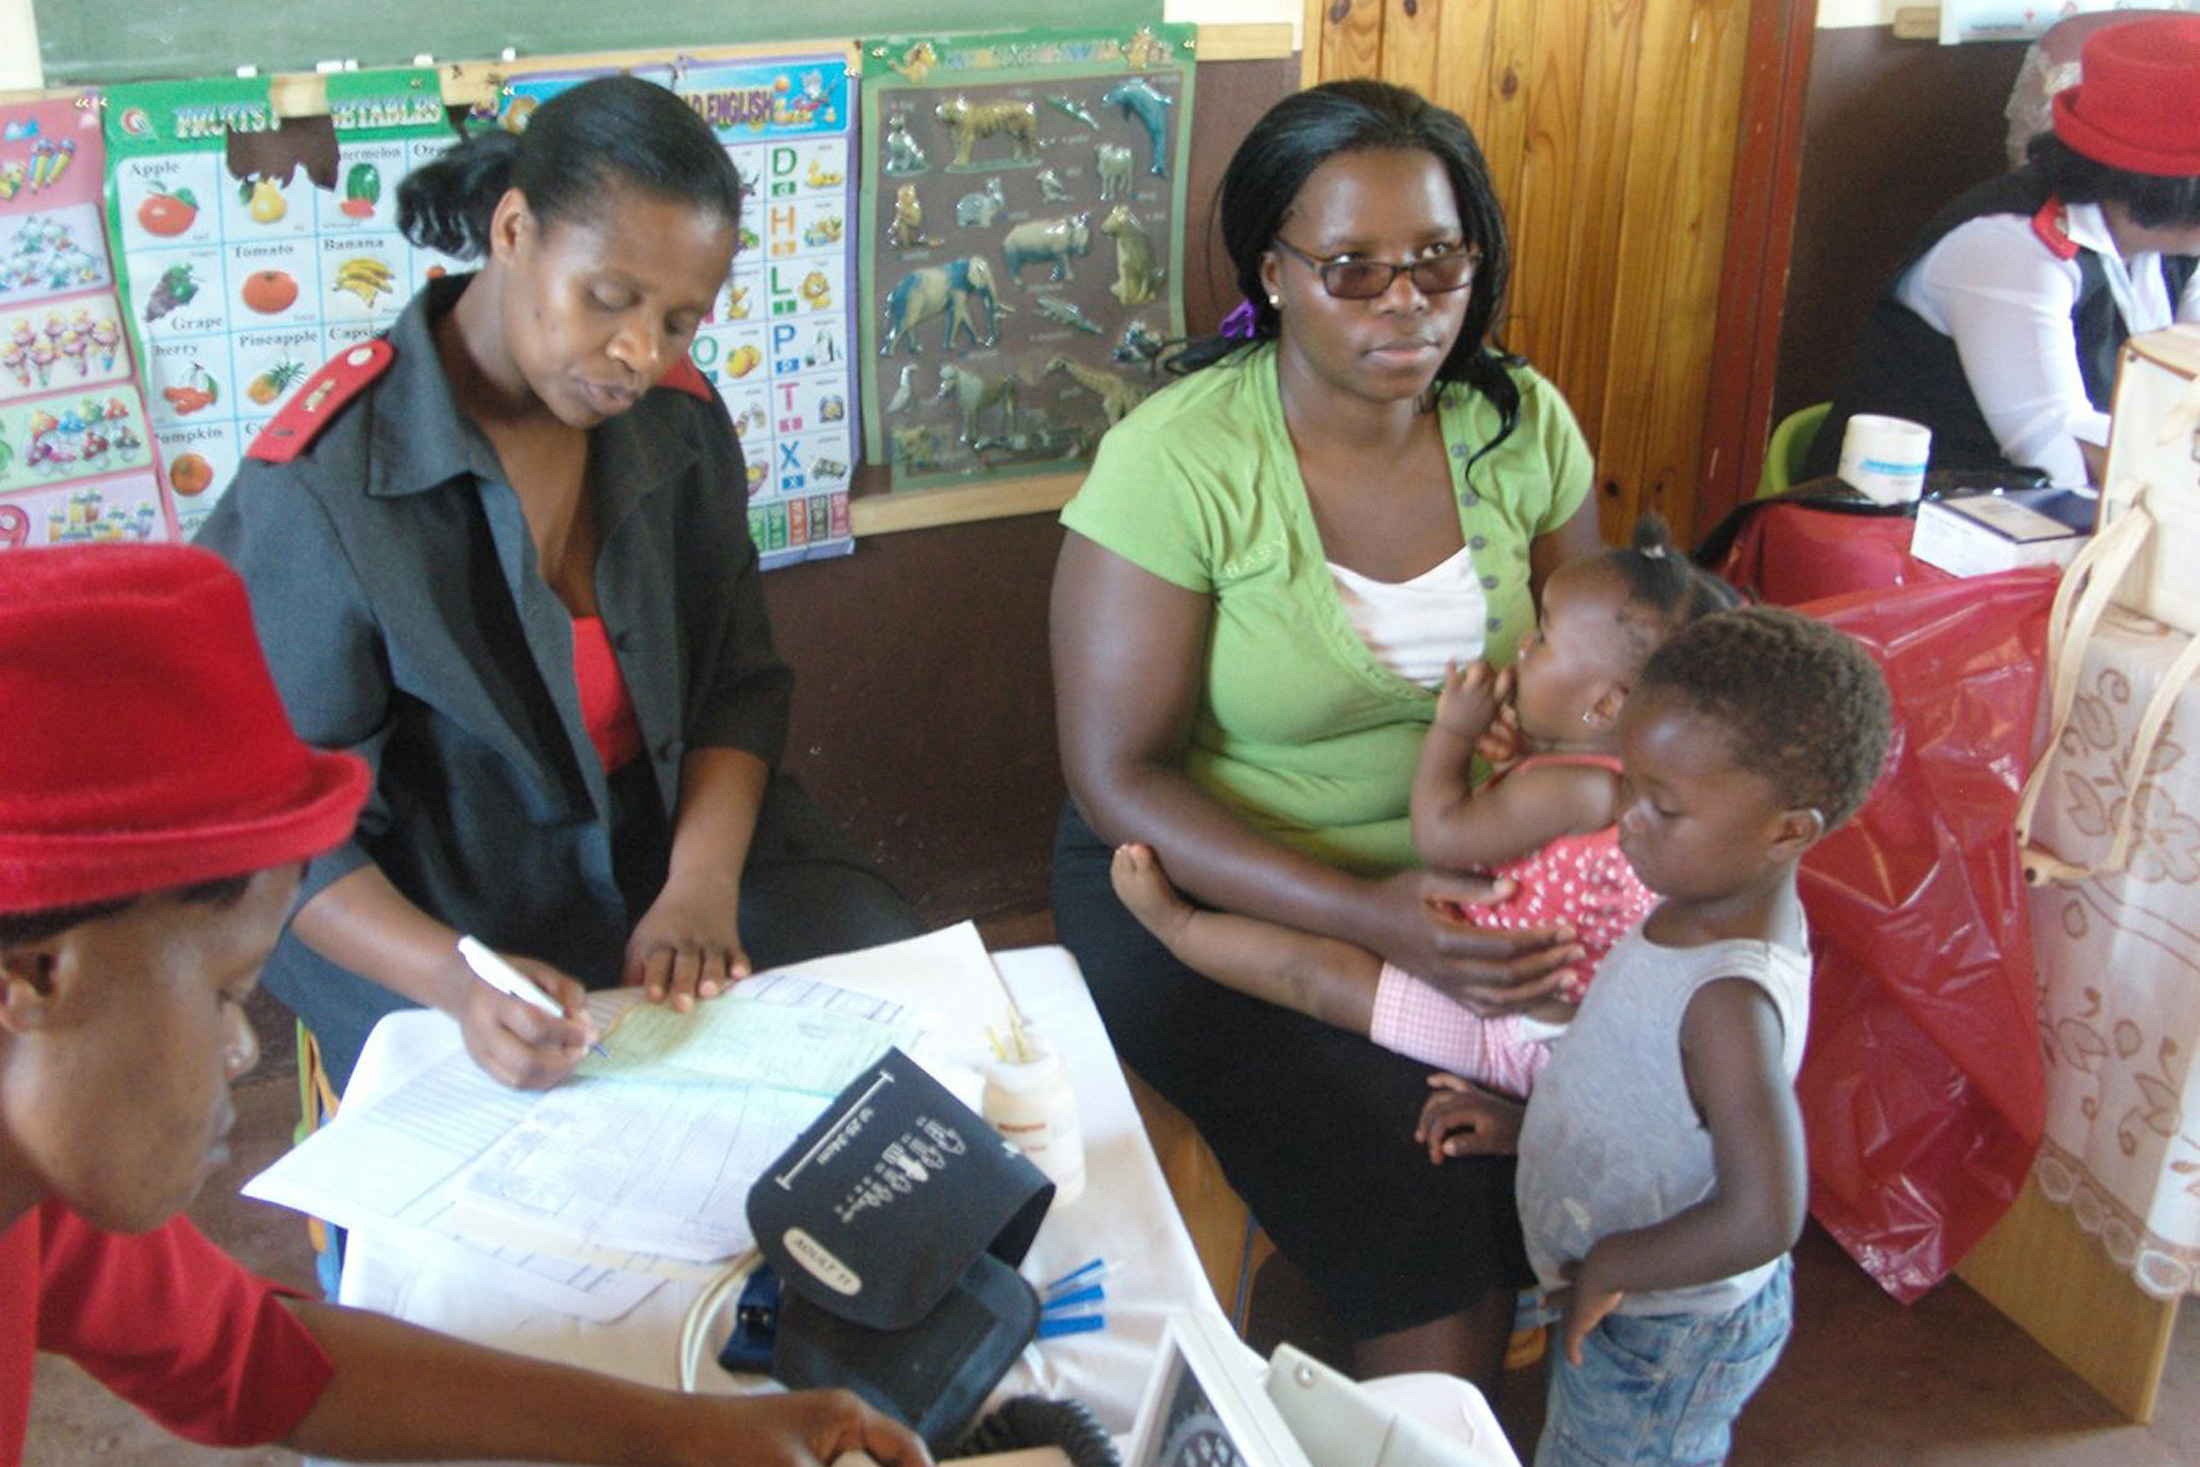 A single mother and her two children receive a check up at a public health facility in Swaziland